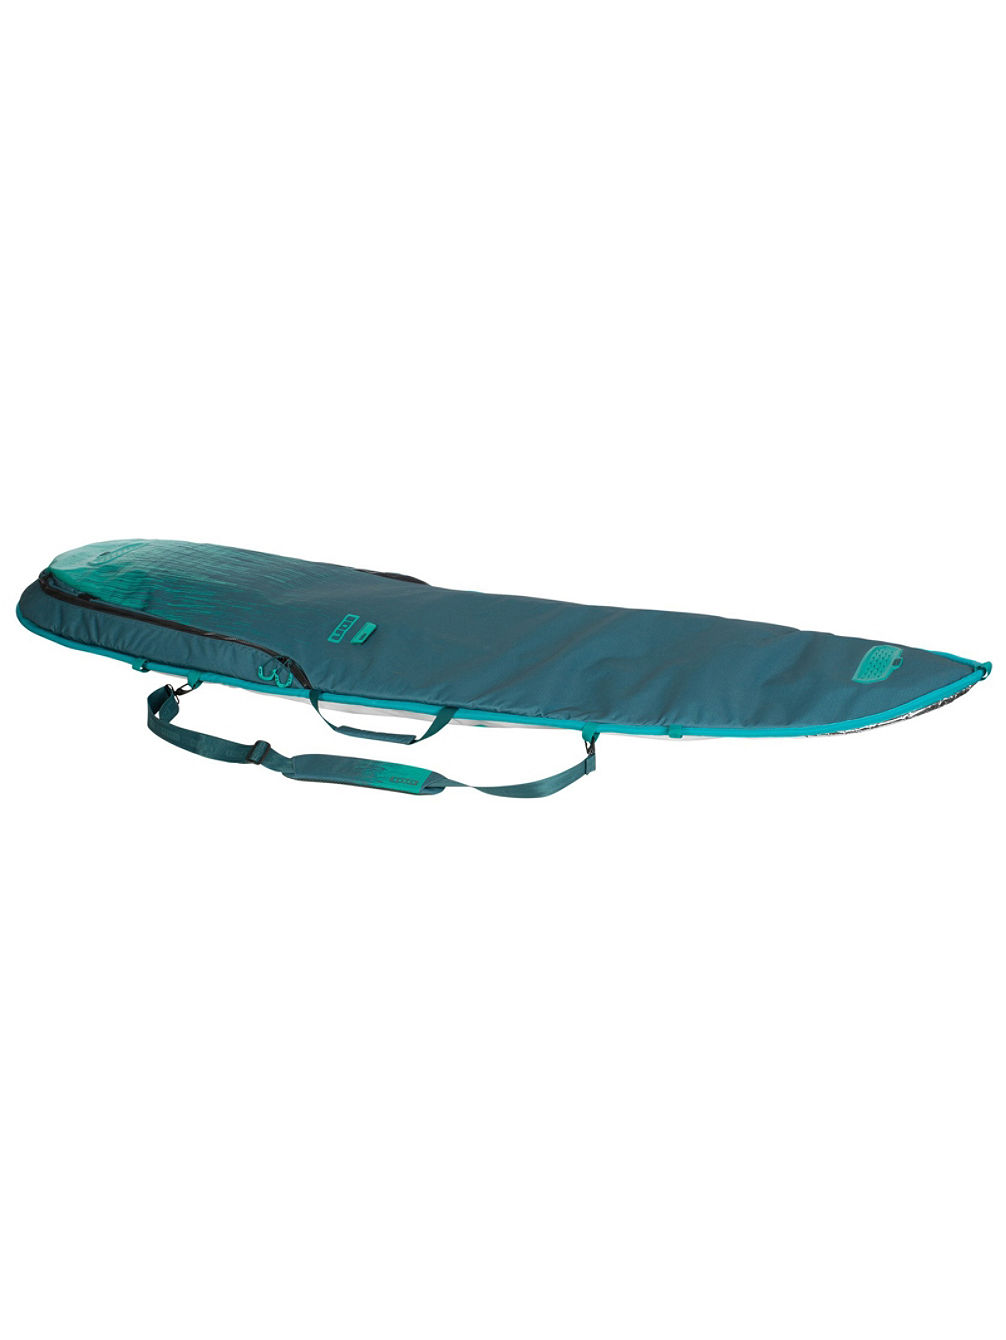 Surf TEC 6'10 Surfboard Bag